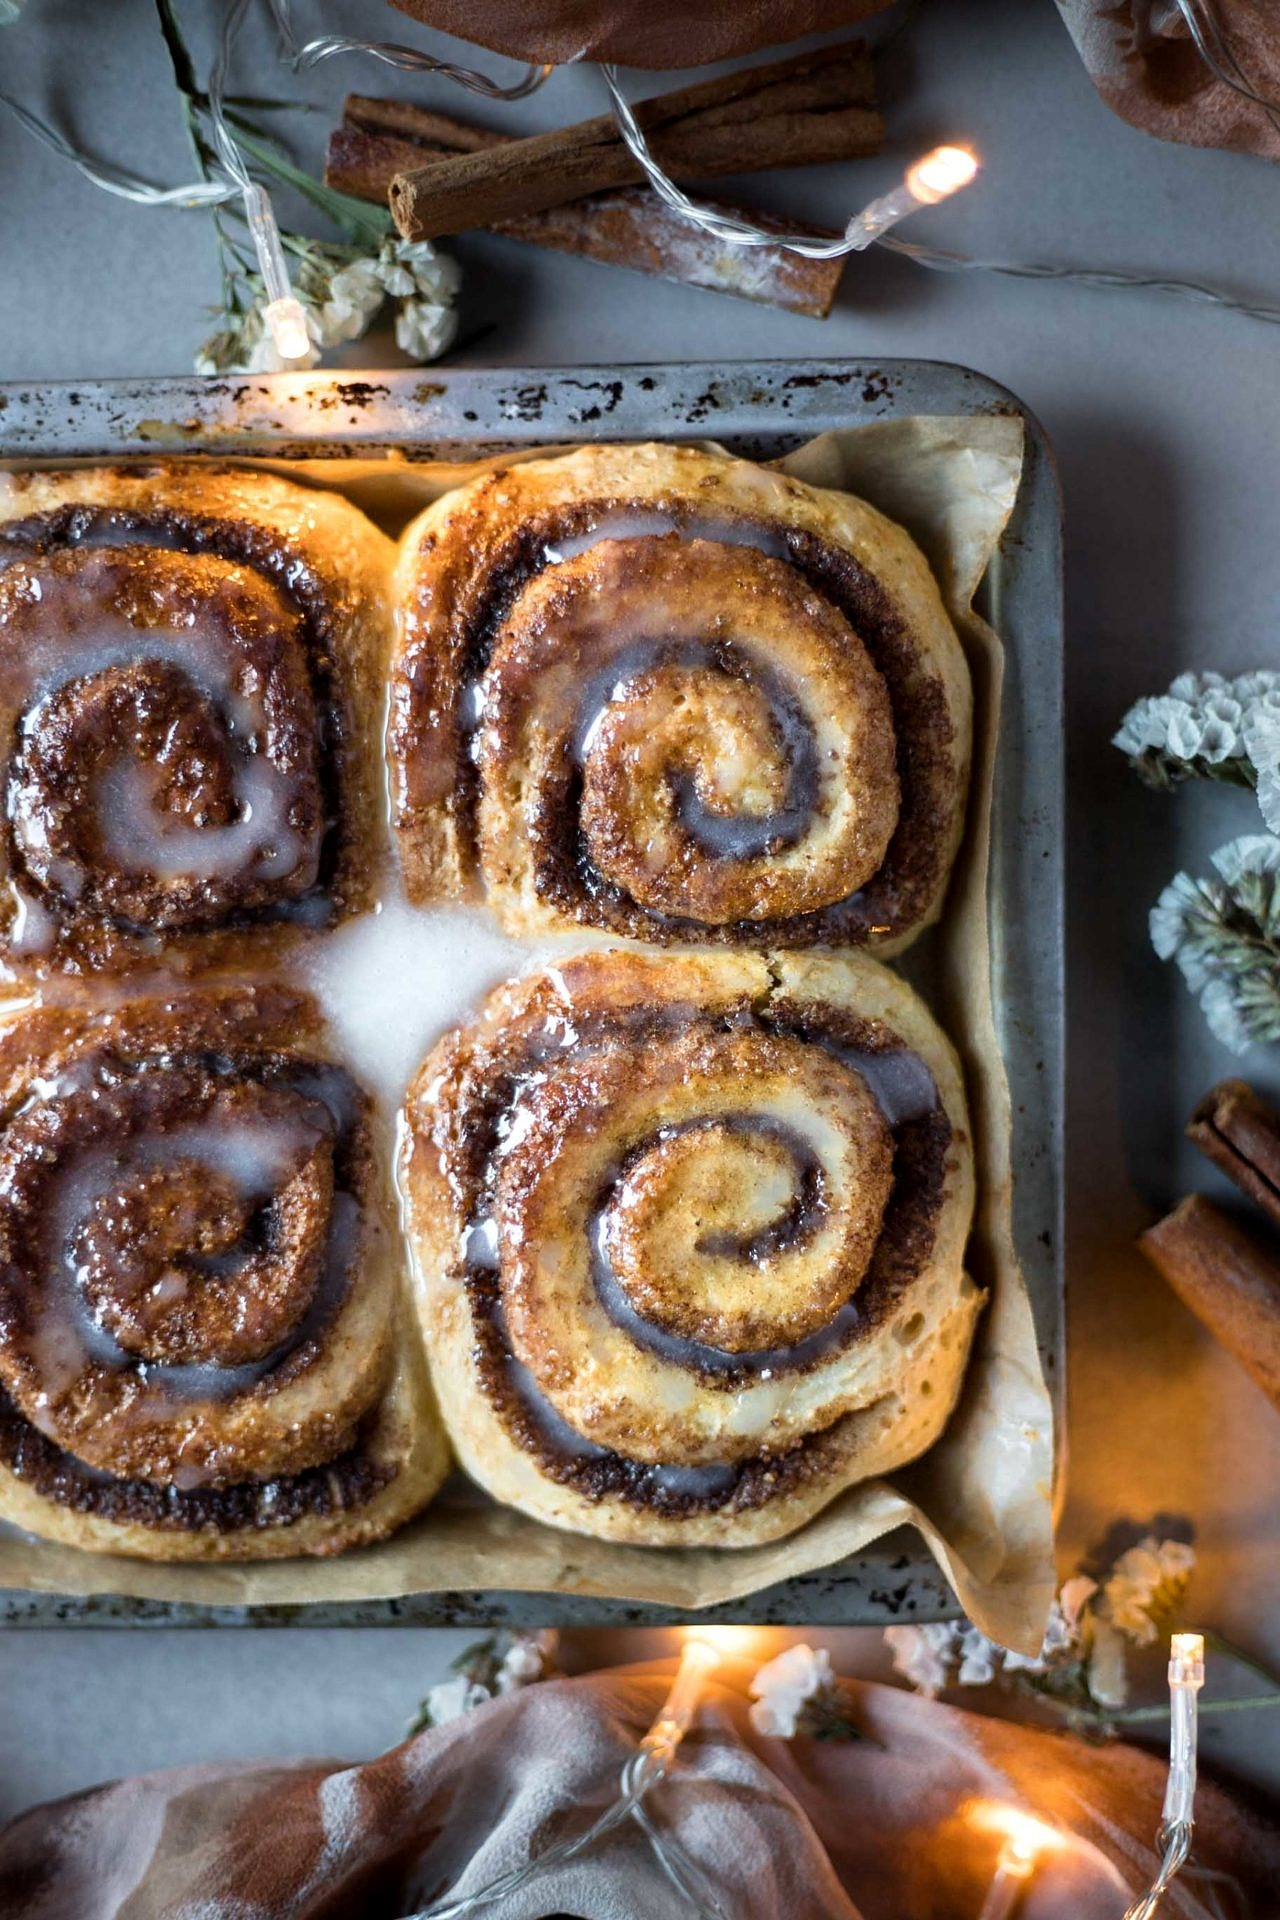 These Gluten-Free Cinnamon Rolls are tender on the inside and flaky on the outside. Cinnamon-spiked, perfectly sweet and so delicious!